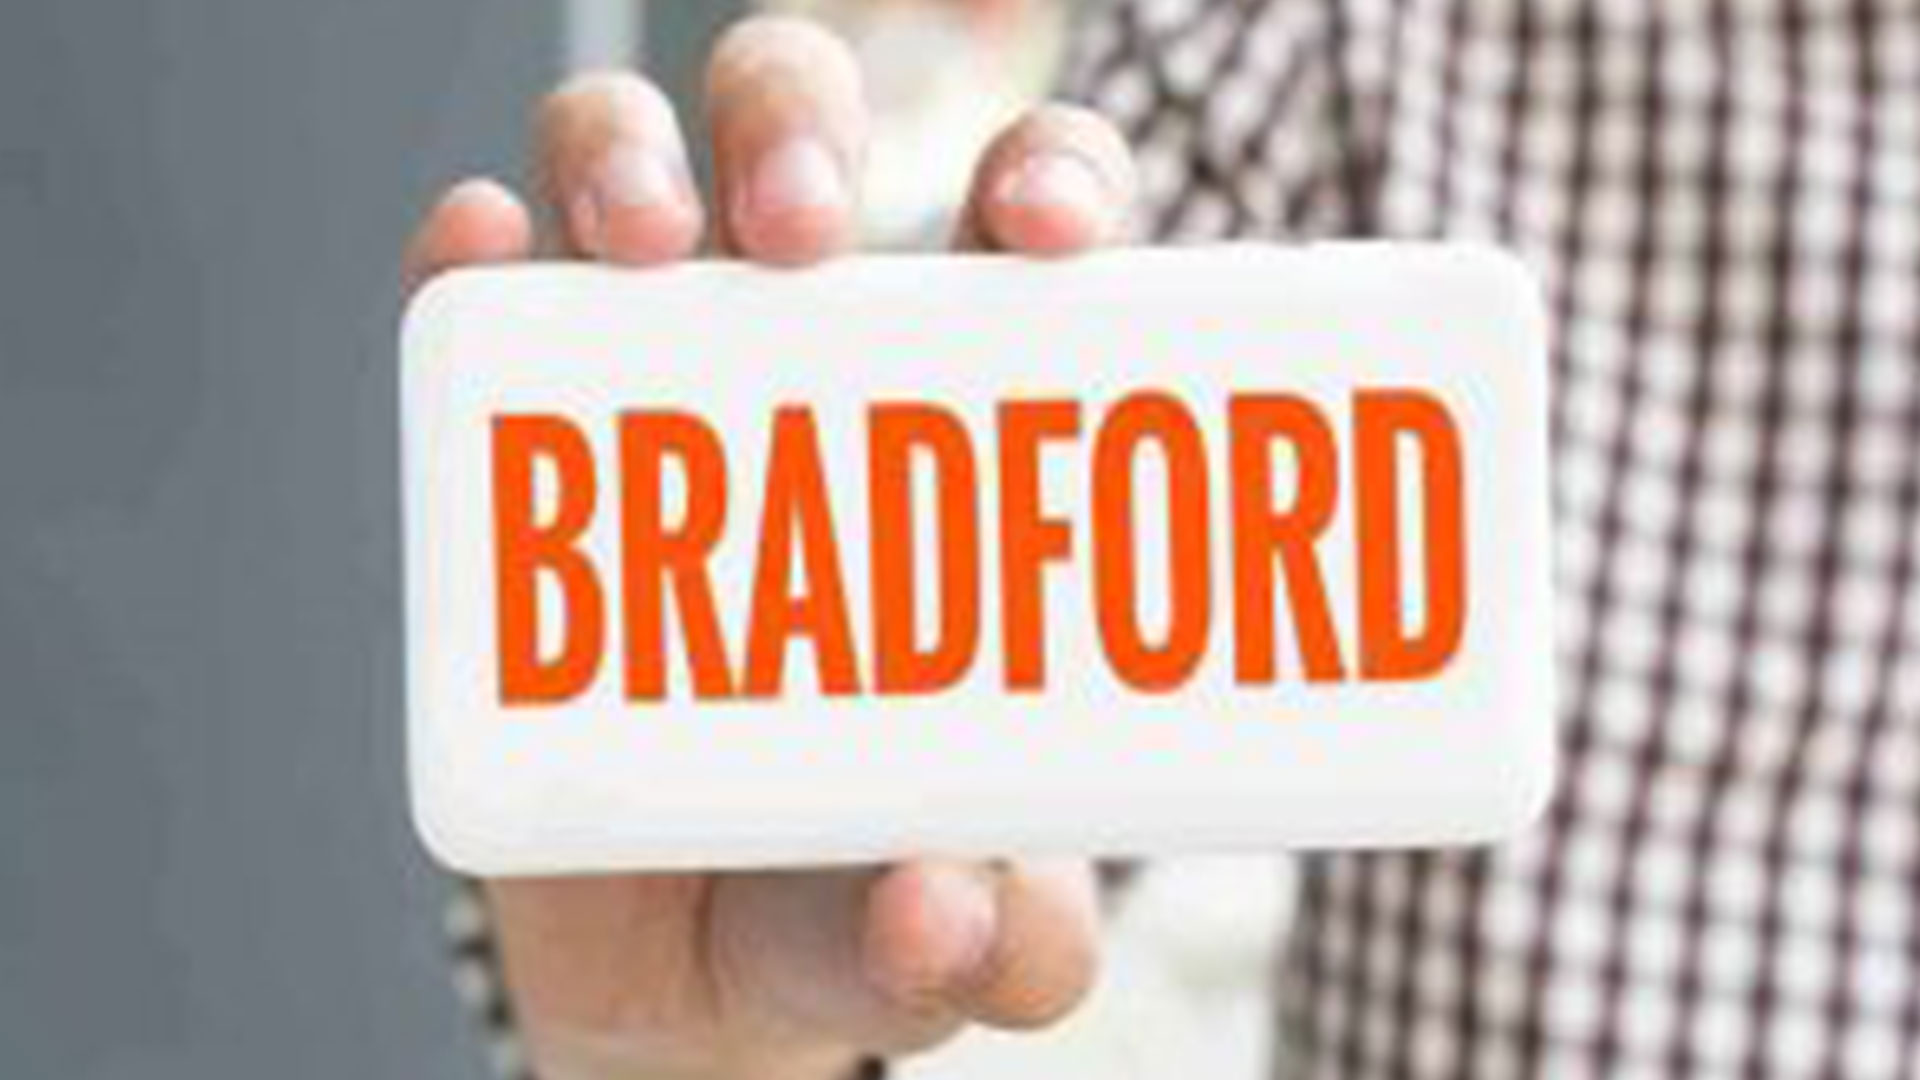 Bradford Property Investment